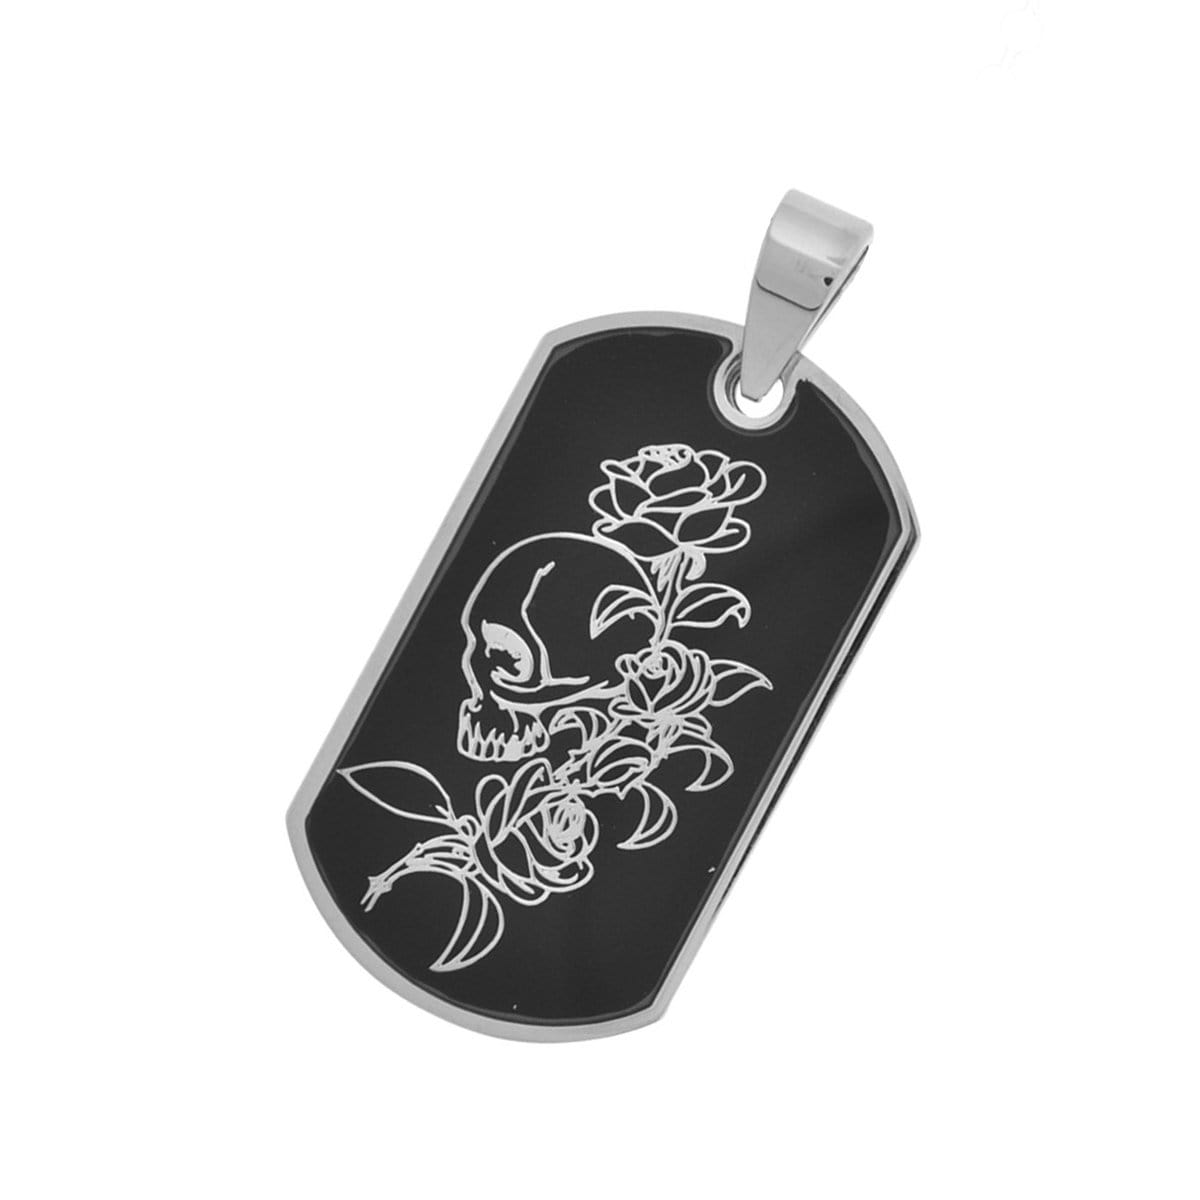 Black and Silver Stainless Steel Skull and Rose ID Tag Pendant